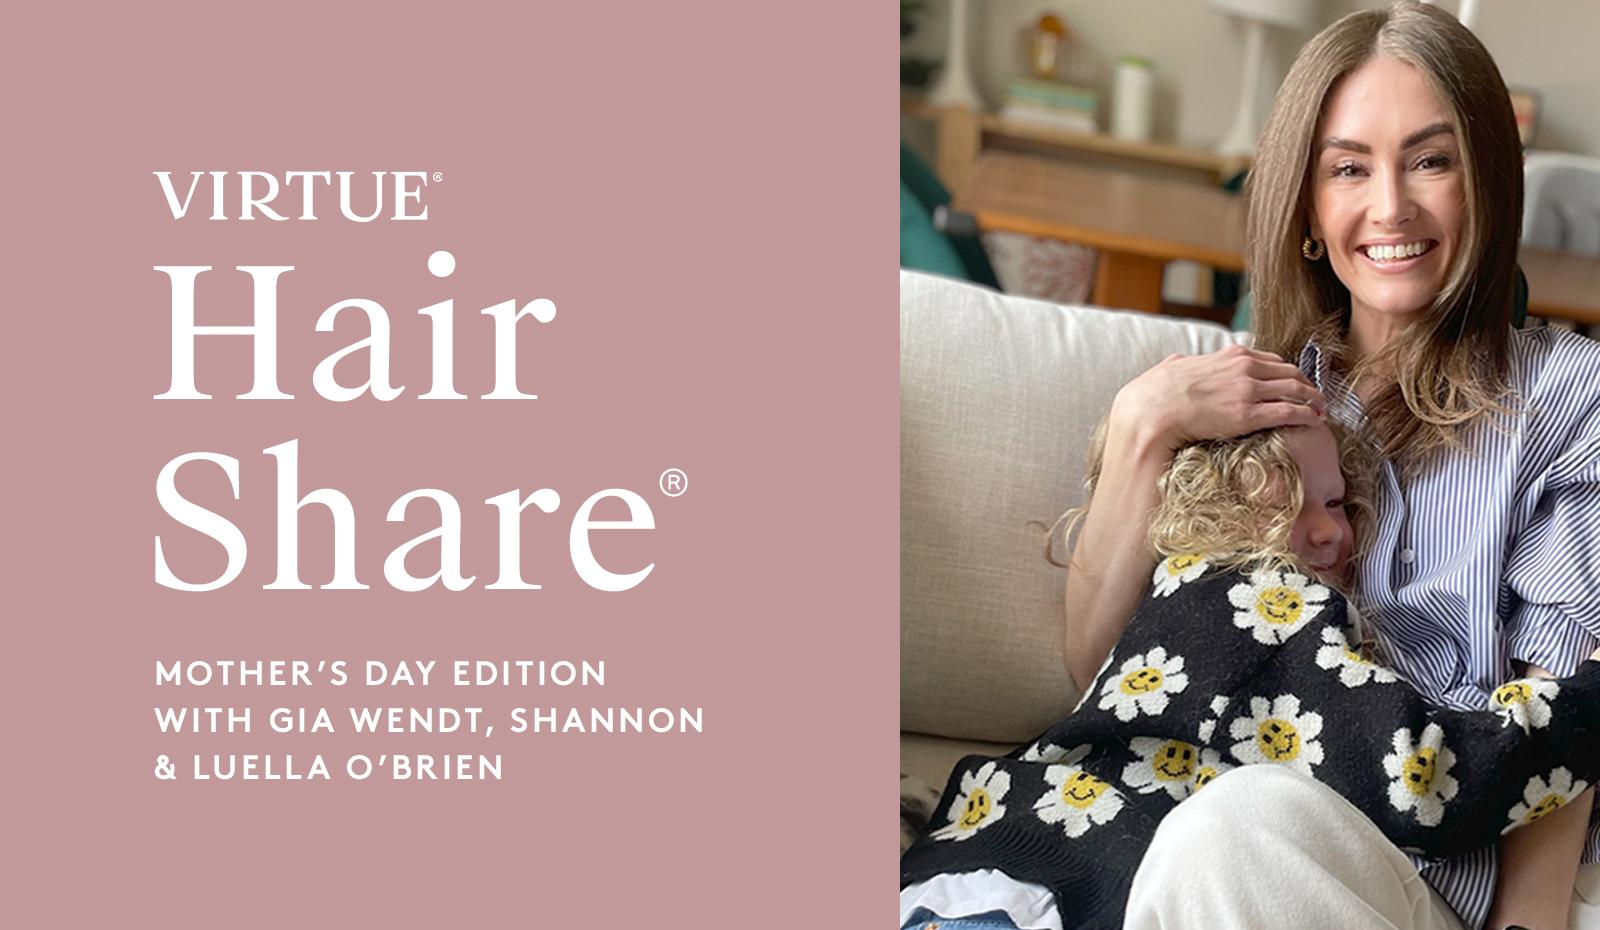 The Virtue Hair Share®: Mother's Day Edition with Gia Wendt